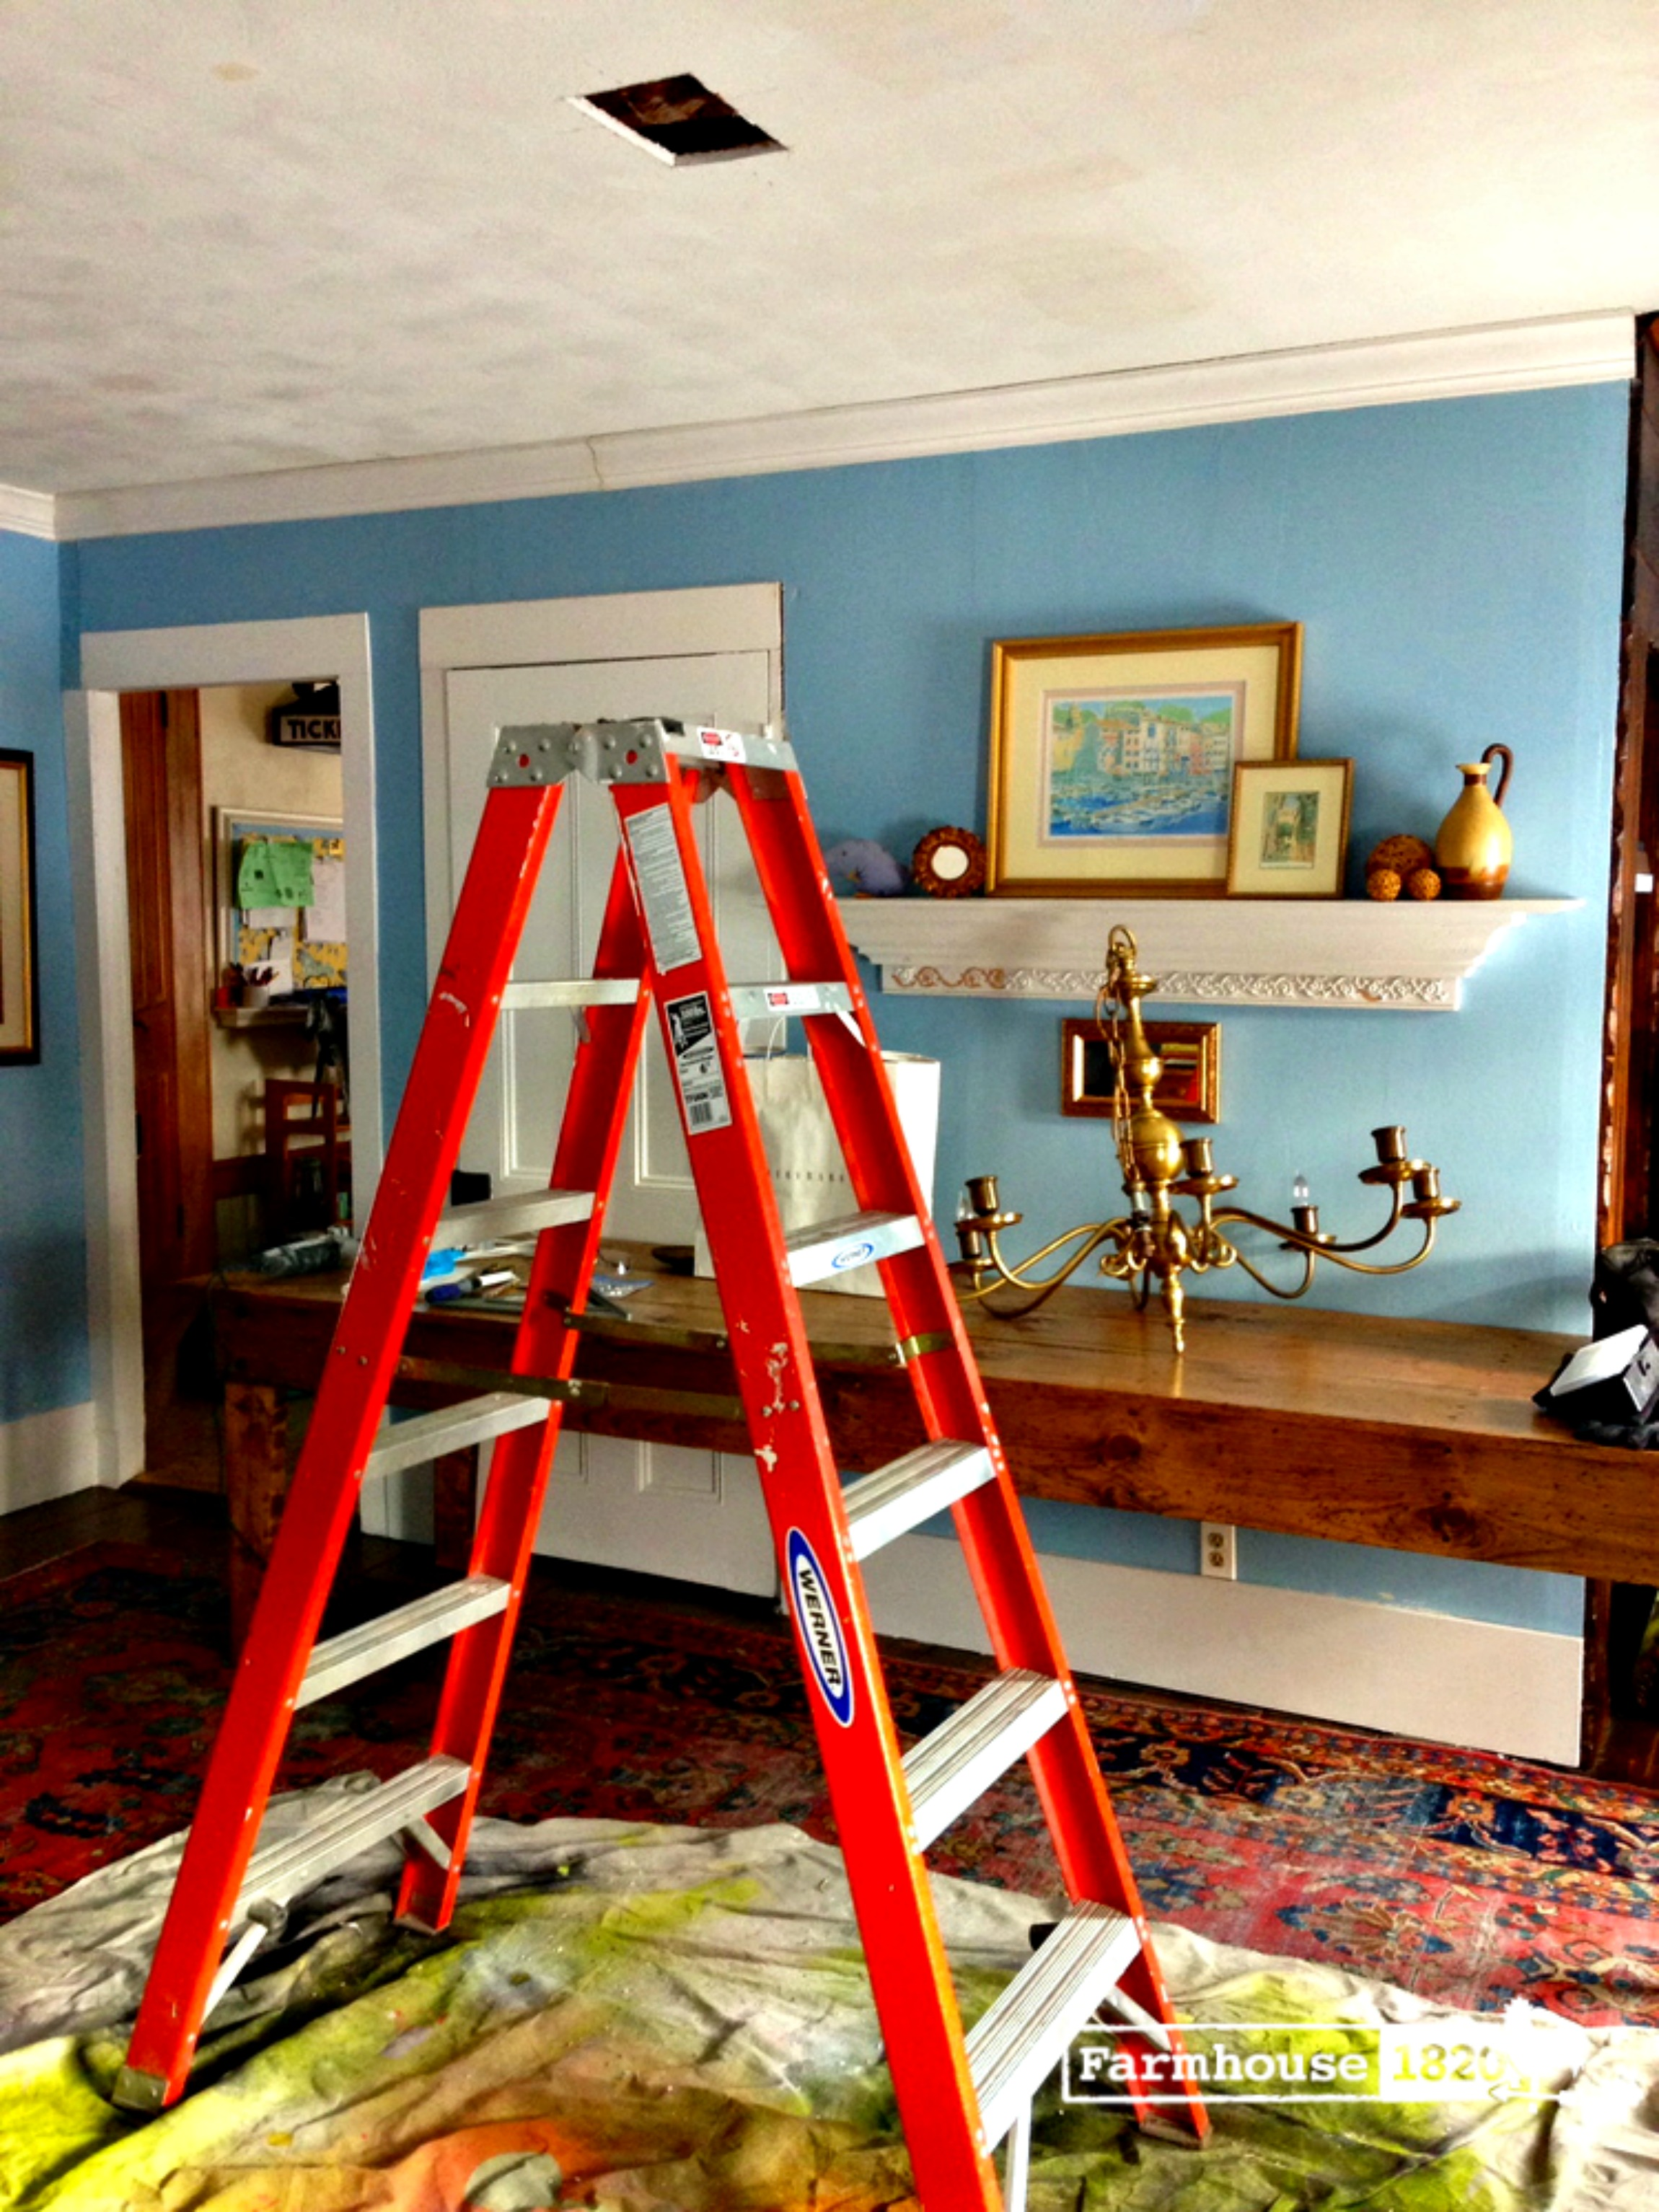 chandelier - cutting a hole in the ceiling